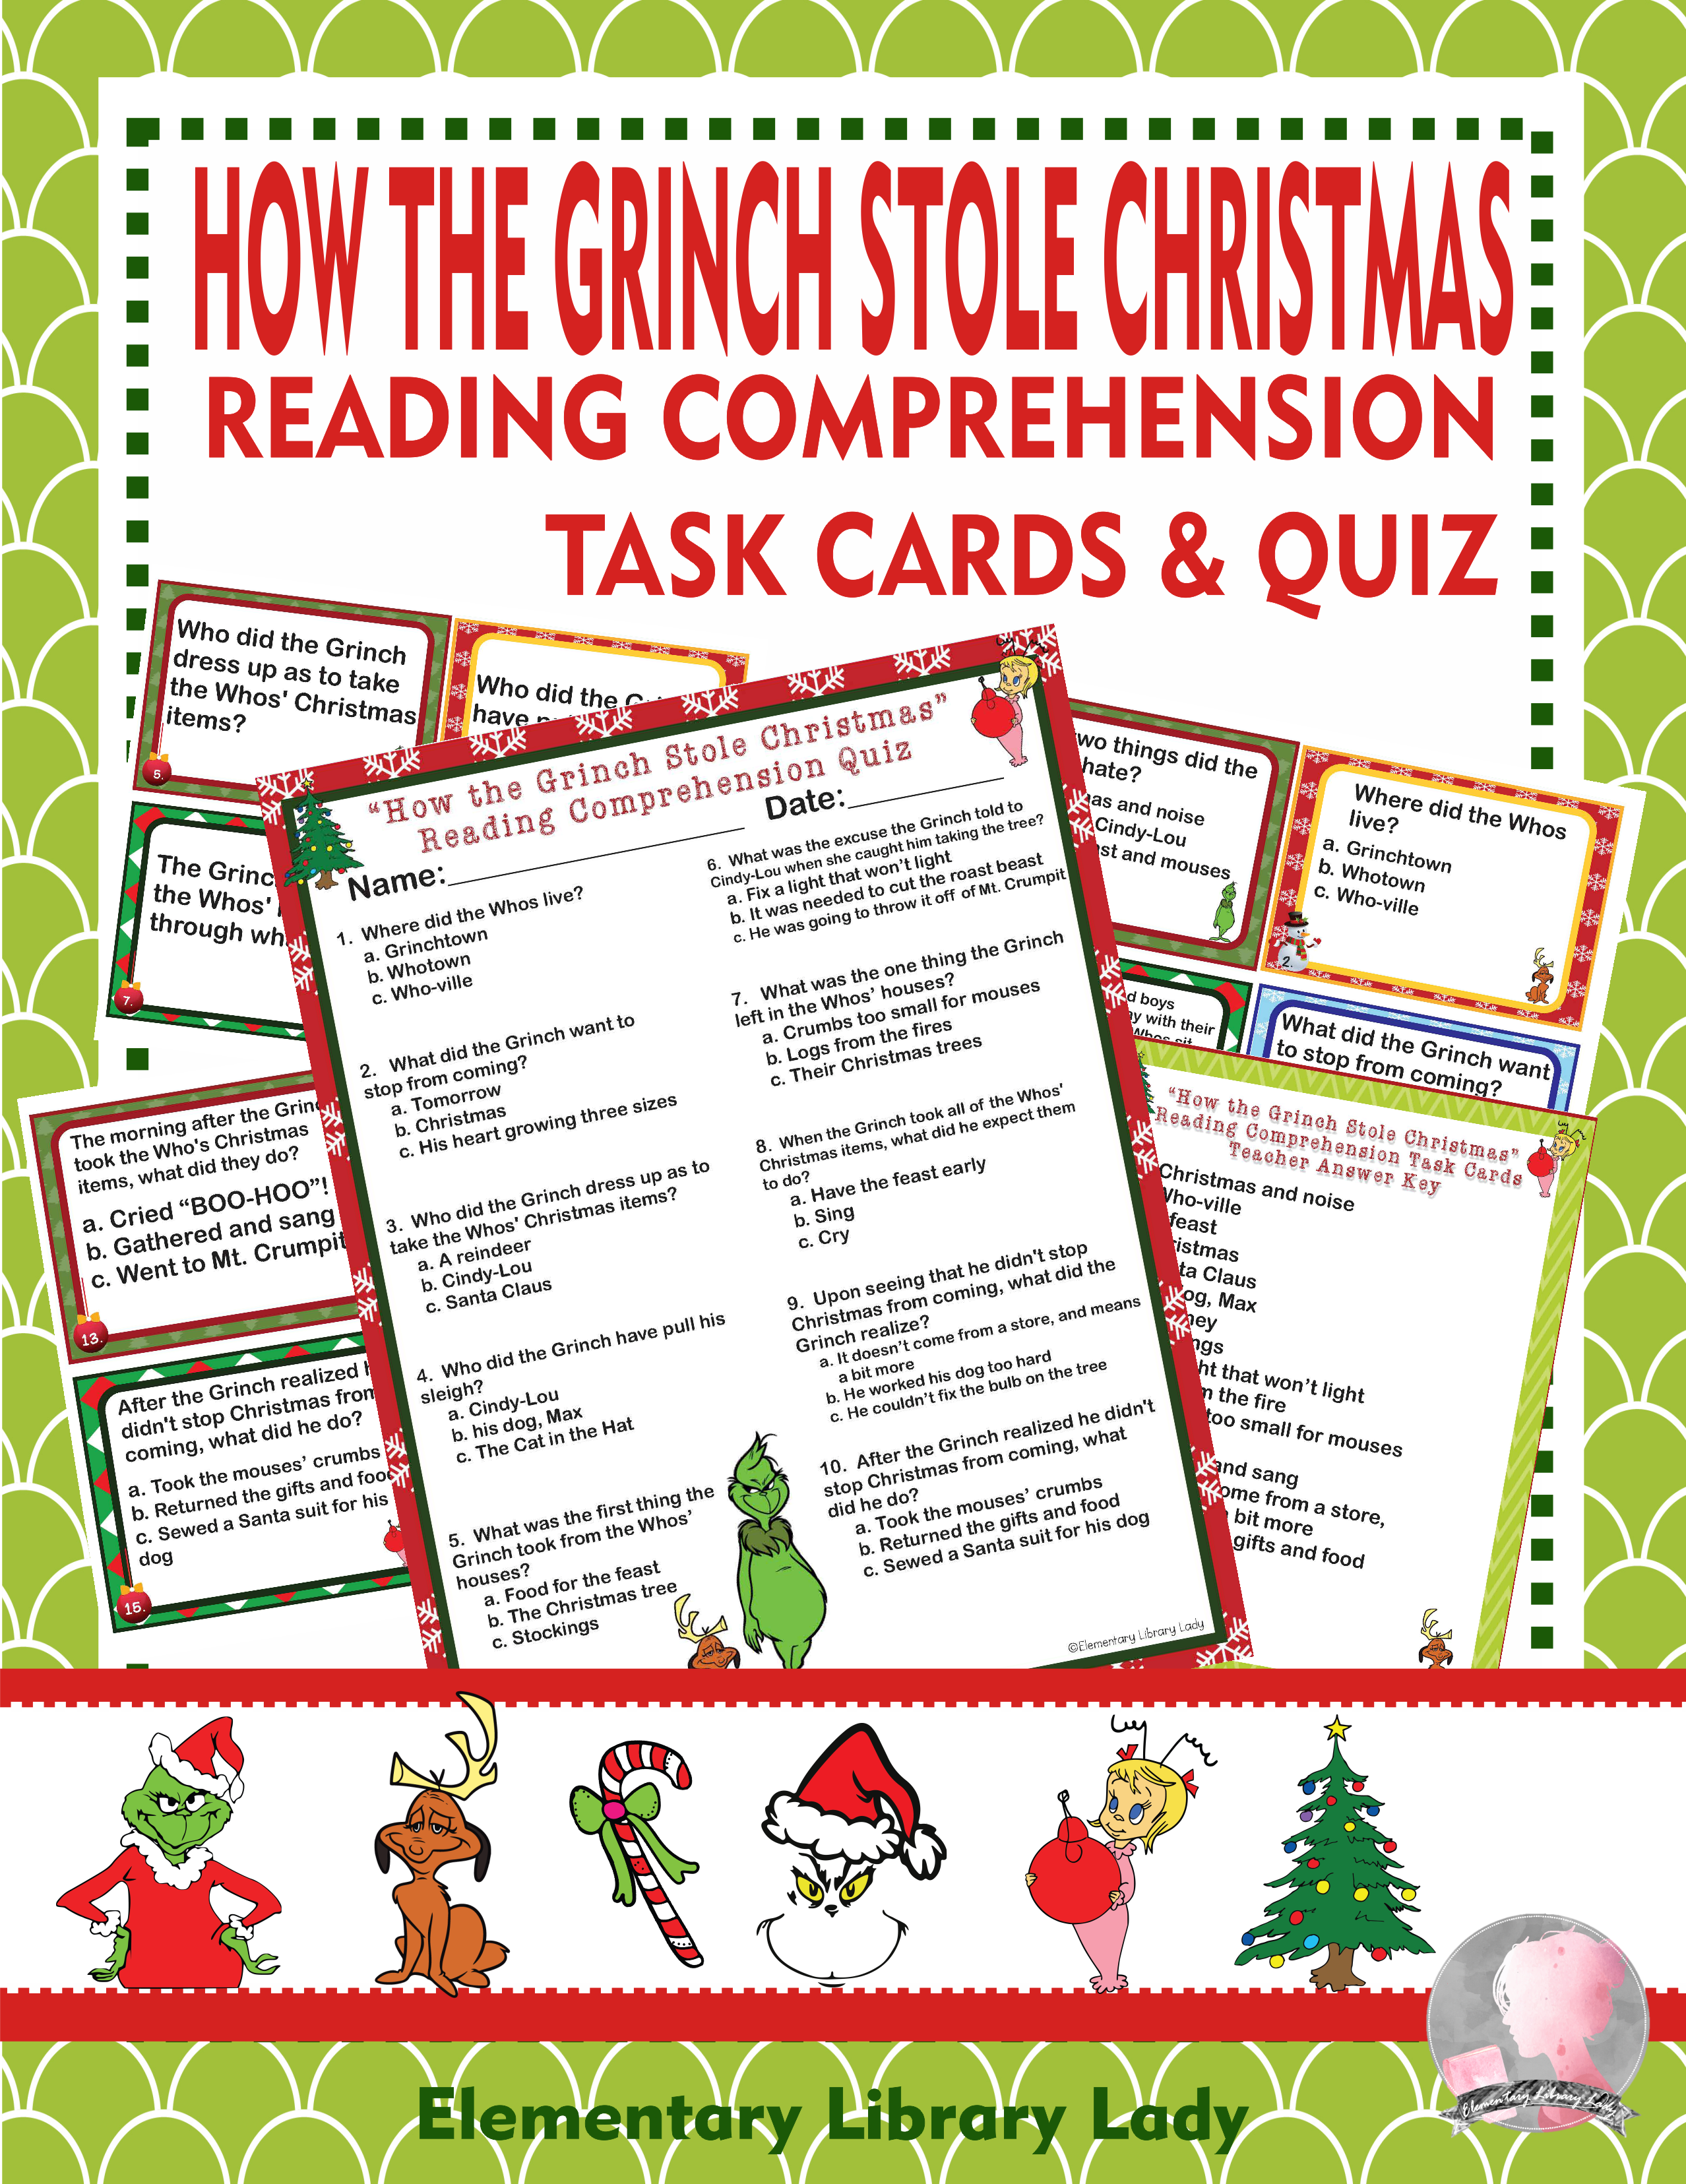 How The Grinch Stole Christmas Activities Reading Comprehension Task C Reading Comprehension Task Cards Christmas Reading Comprehension Reading Comprehension